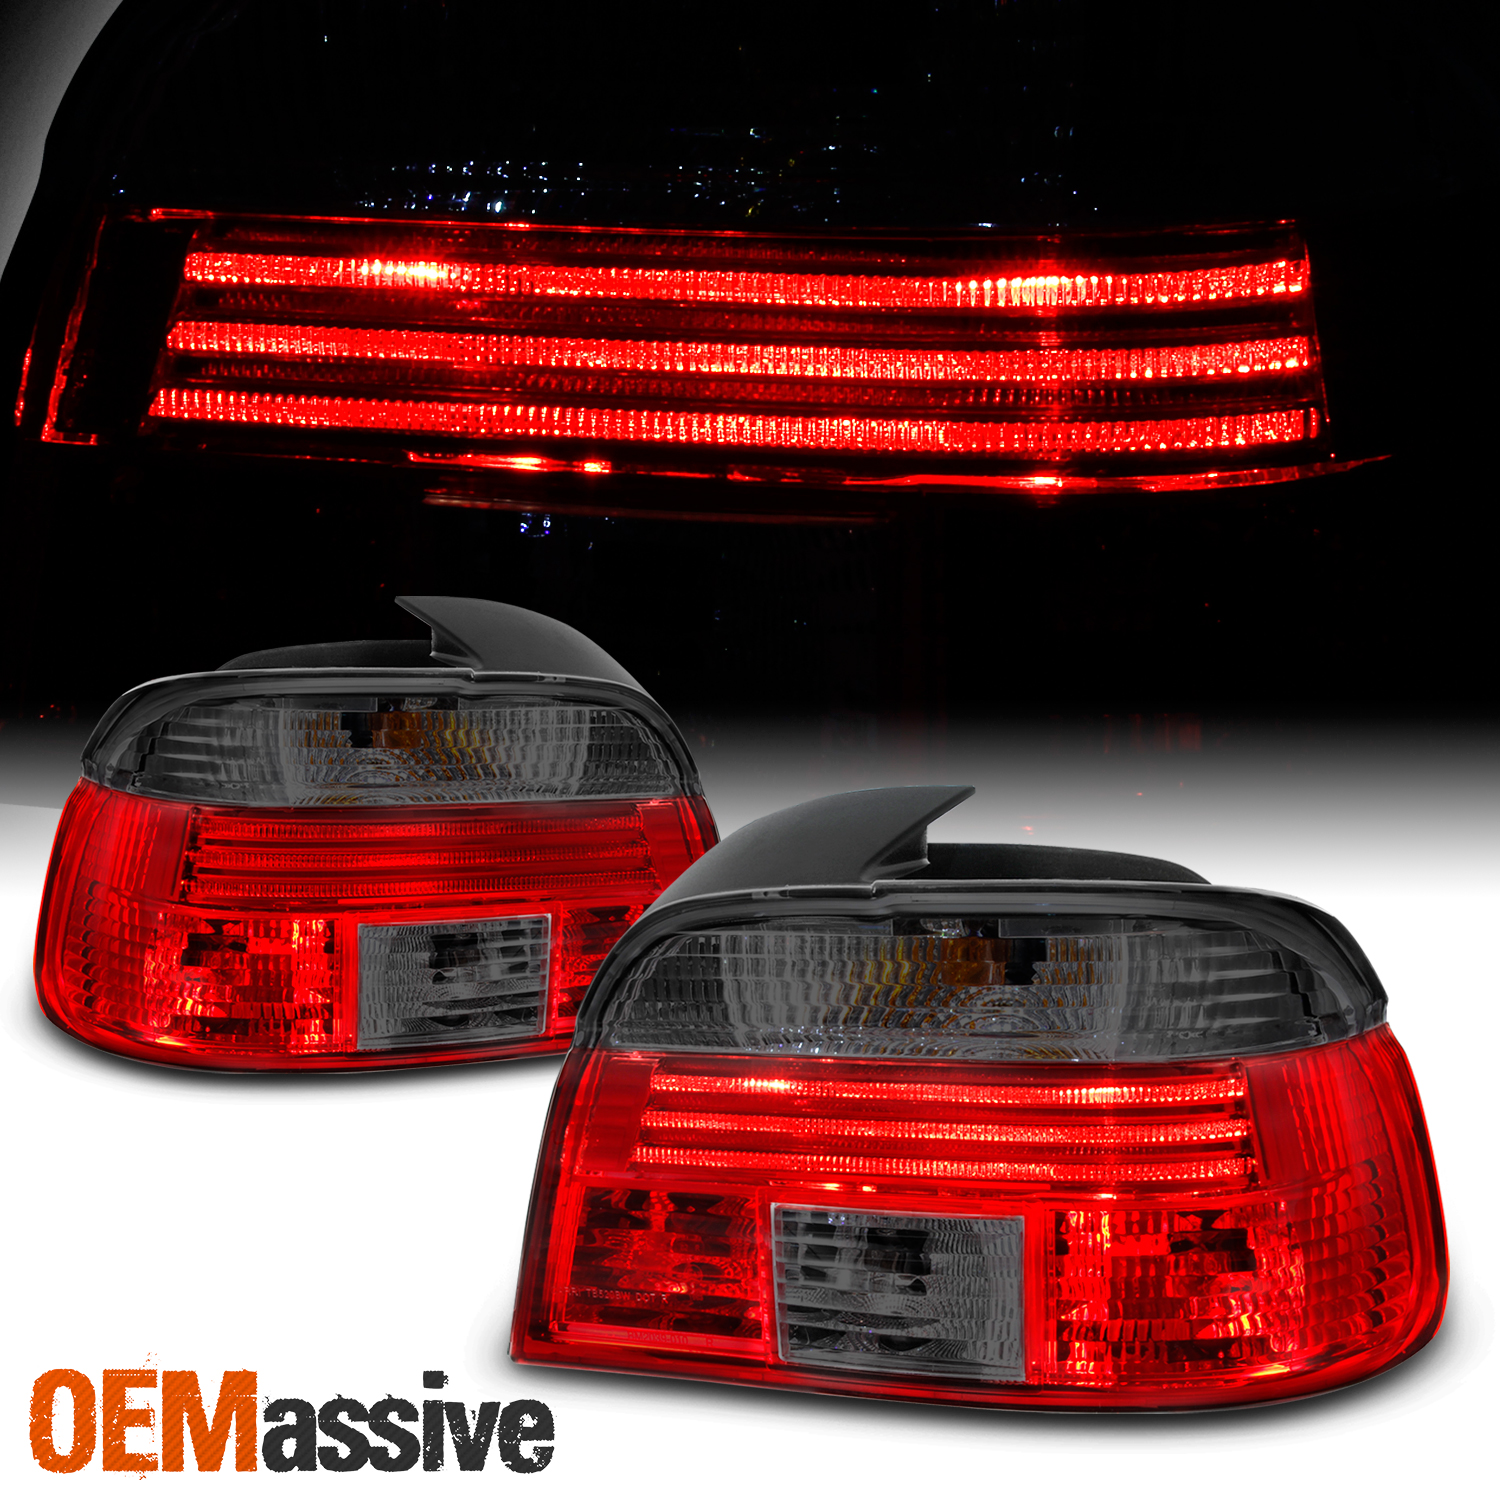 hight resolution of details about fits red smoked 97 00 bmw e39 5 series 525 528i 530 540i m5 tail lights